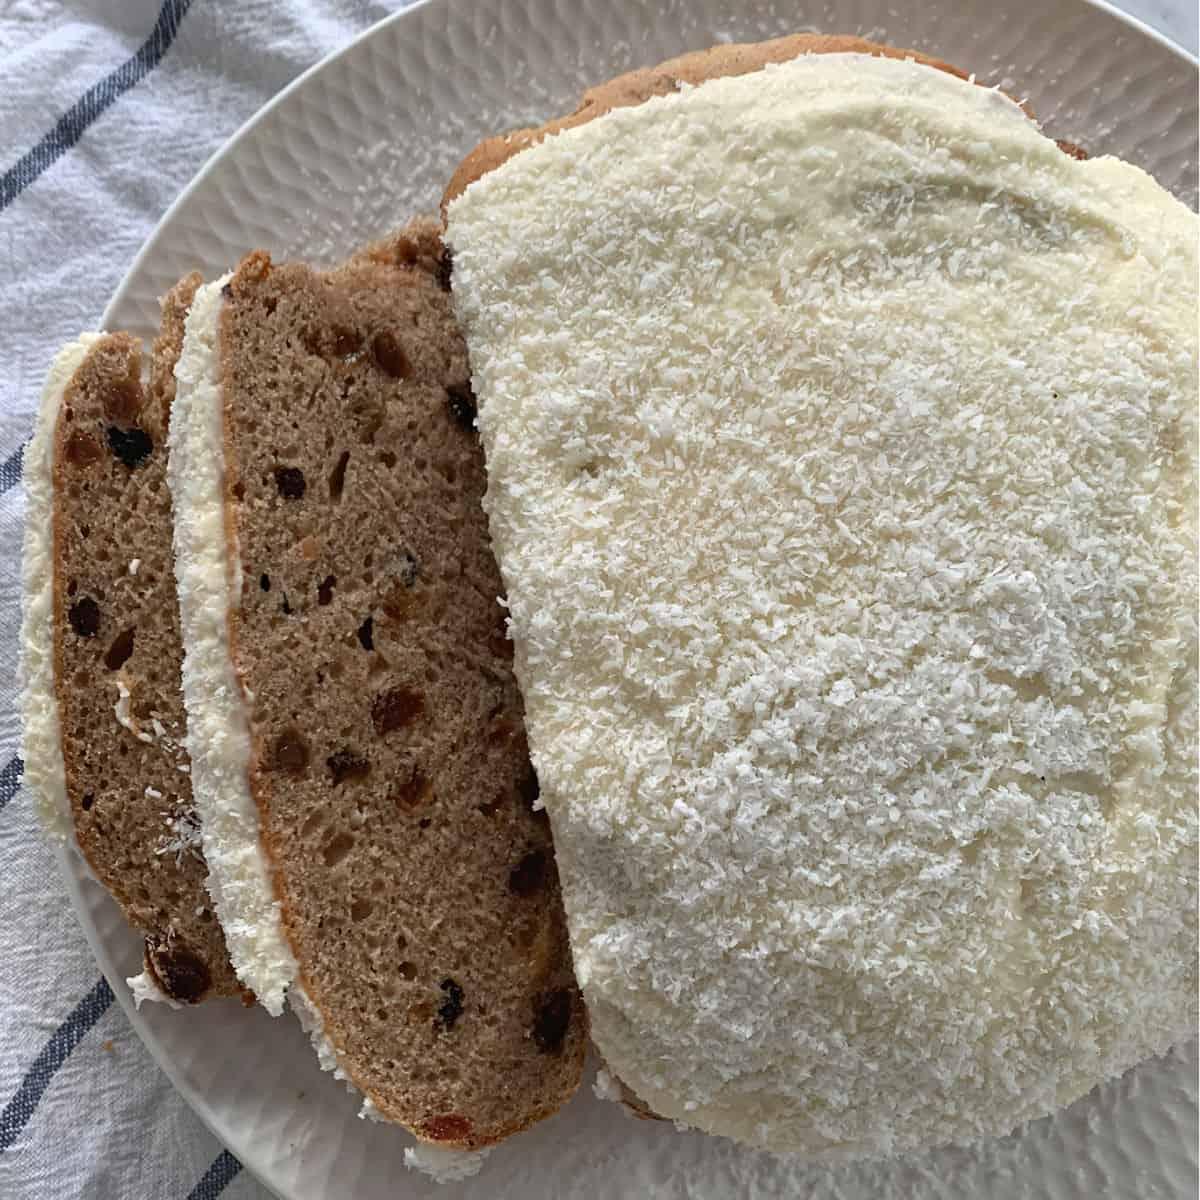 A round Boston Bun, iced and served on a plate, with two slices cut showing sultanas inside.